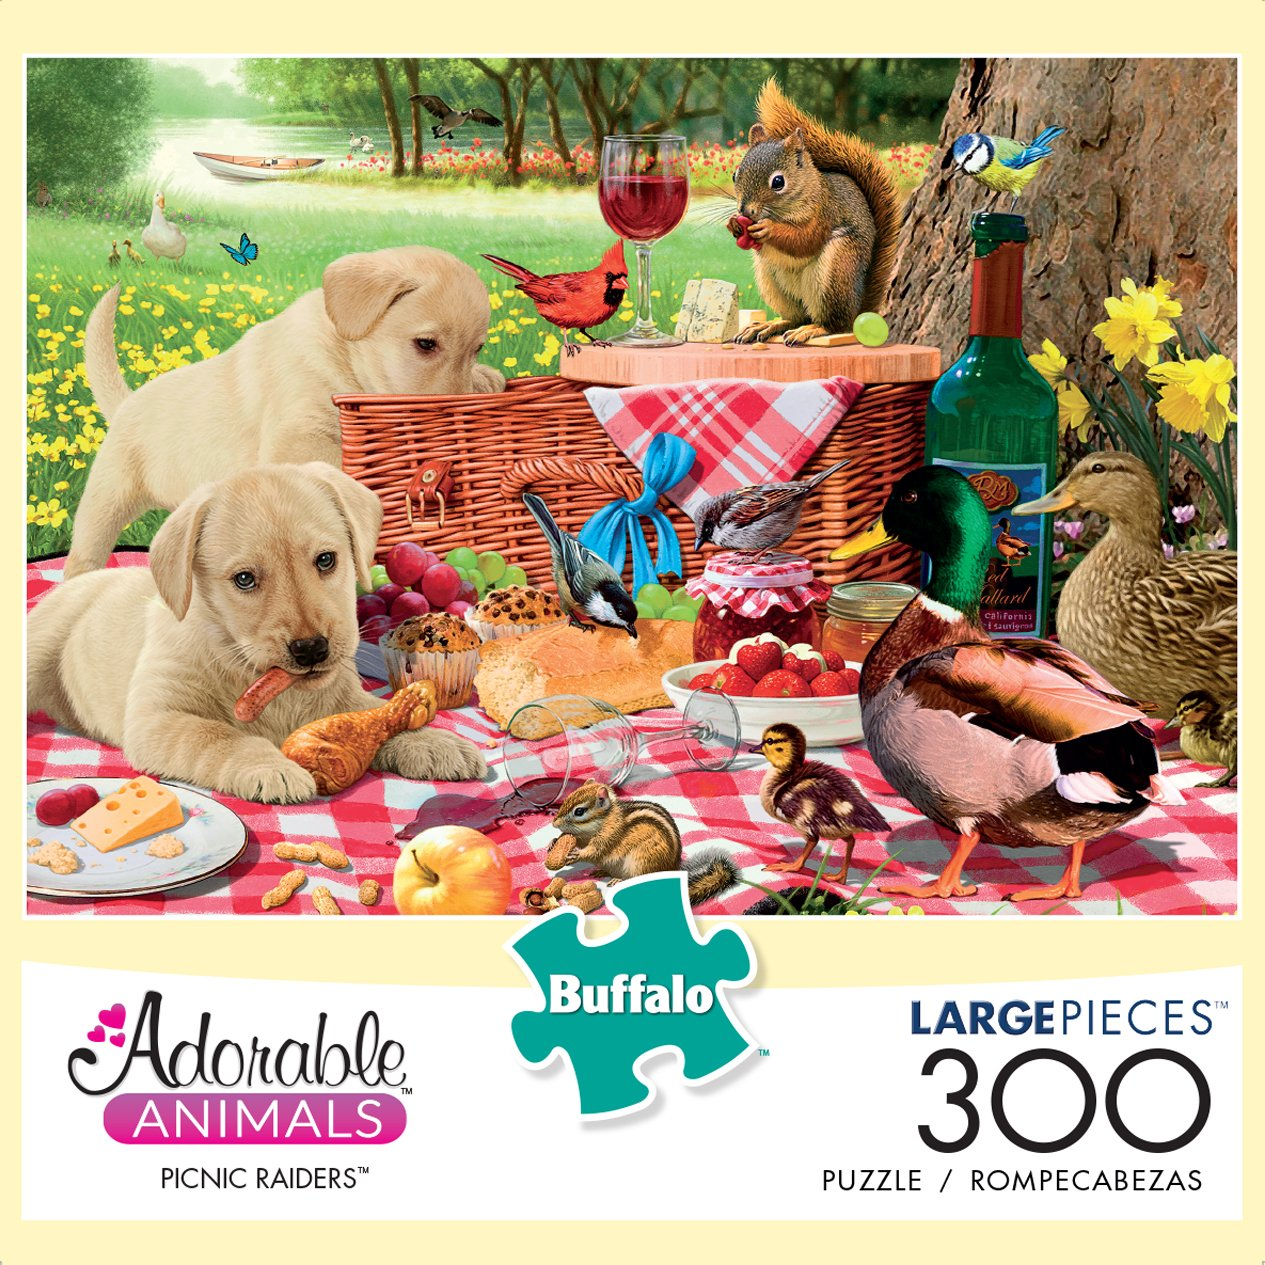 Buffalo Games - Adorable Animals - Picnic Raiders - 300 Large Piece Jigsaw Puzzle by Buffalo Games (Image #2)